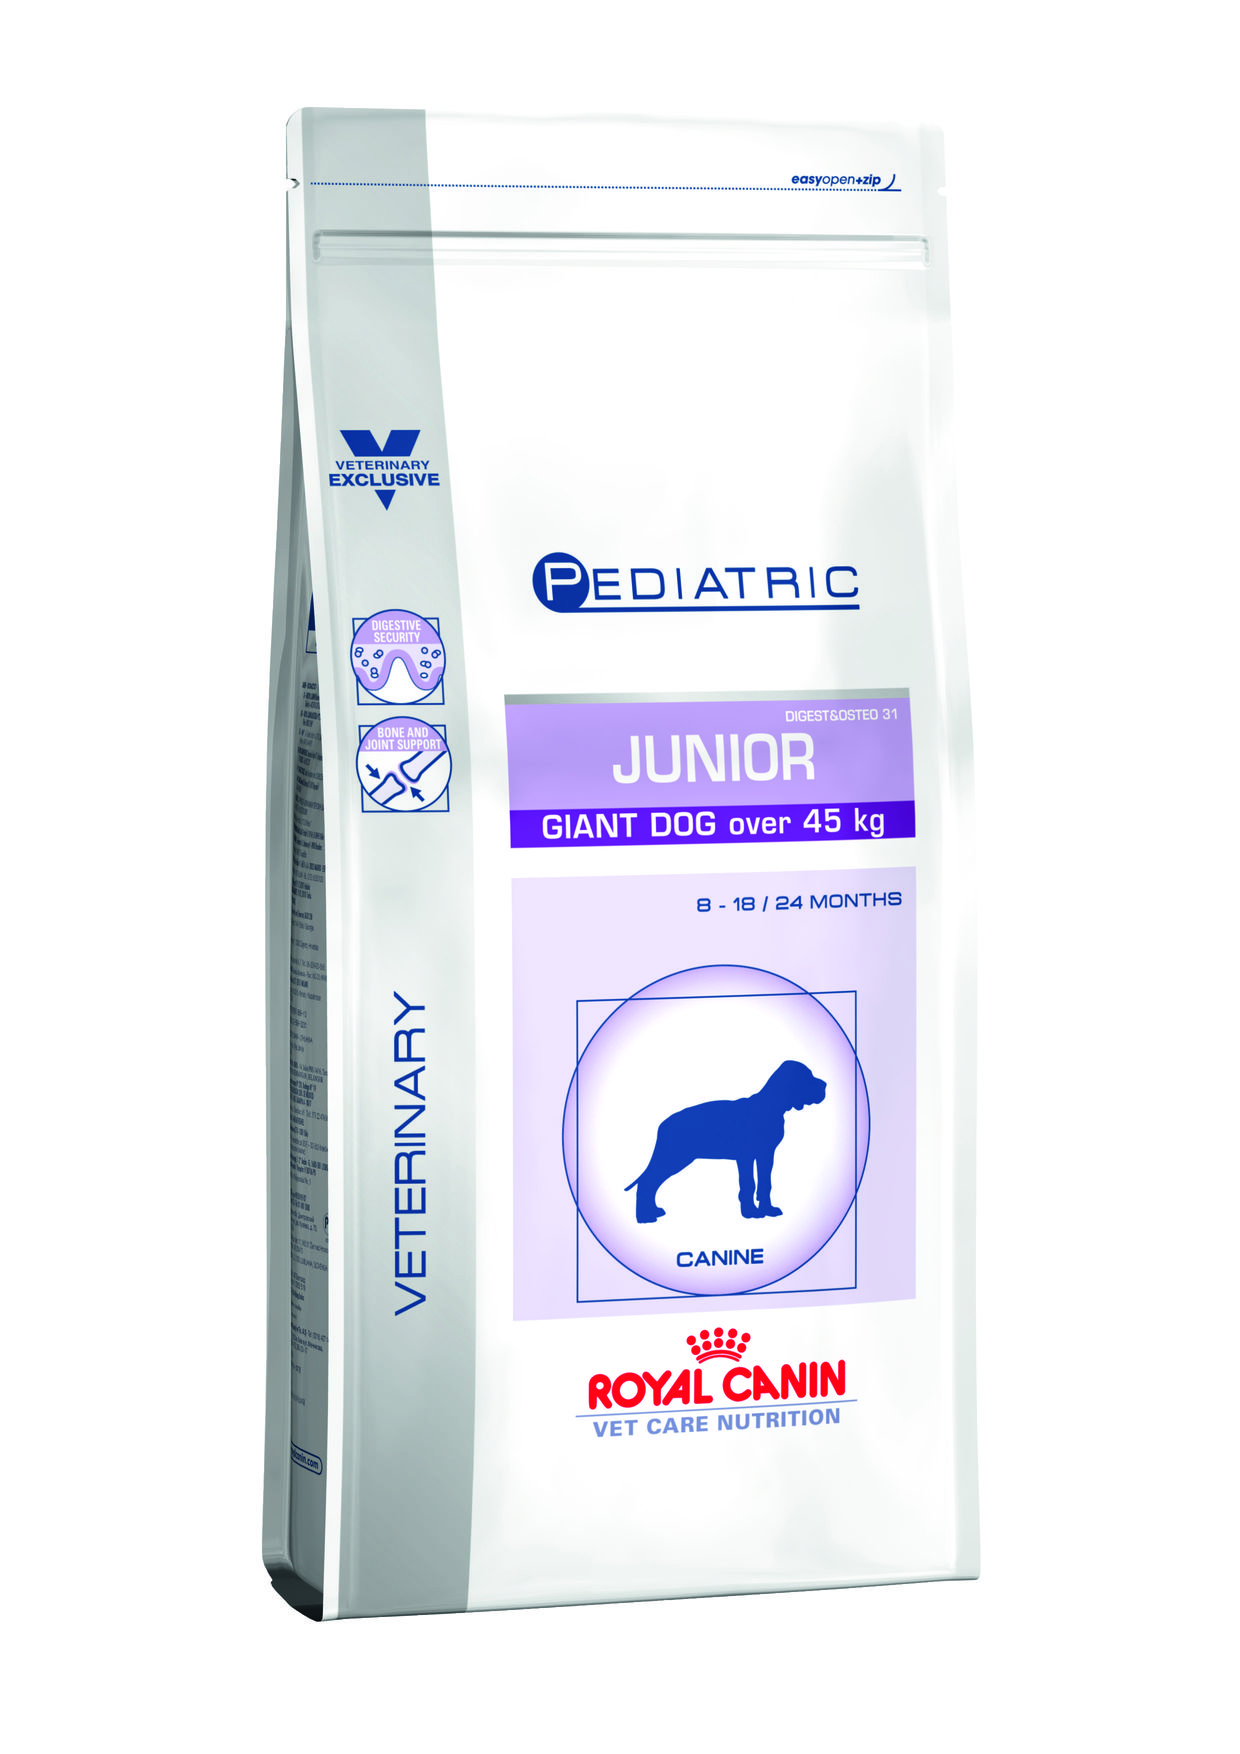 royal canin junior chiens de plus de 45 kilos